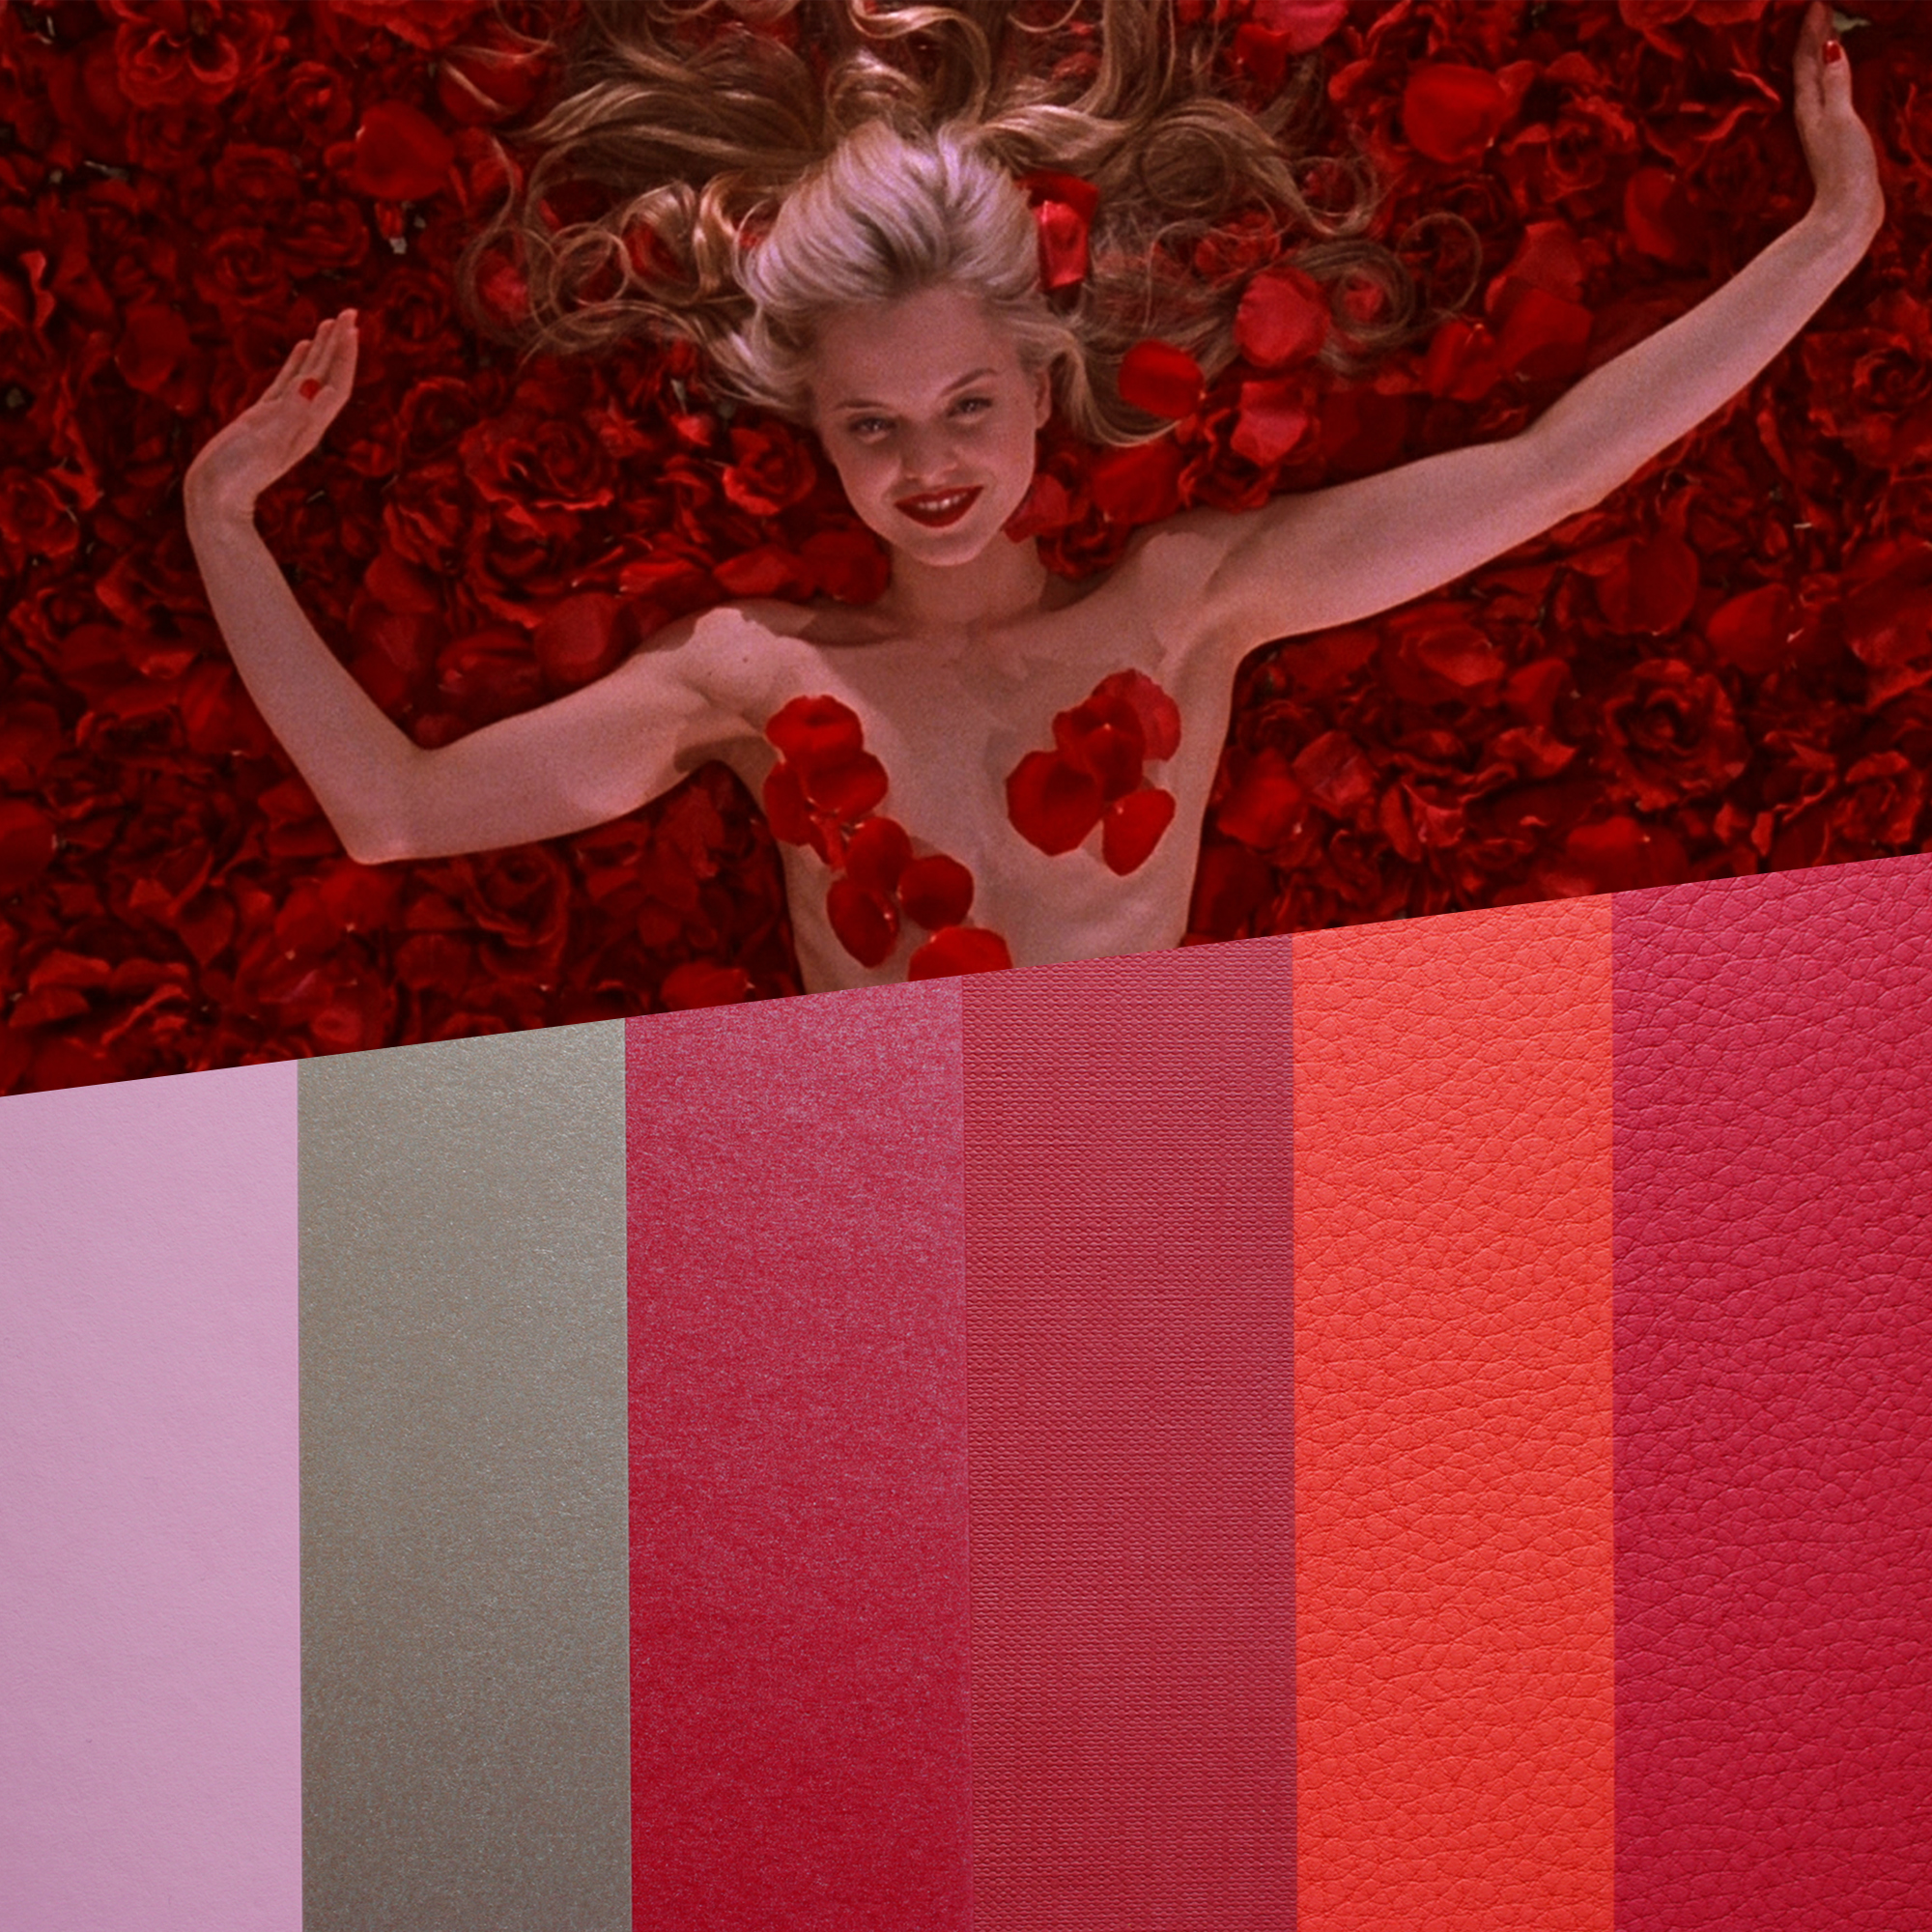 design papers collections inspired by an iconic movie scene - american beauty